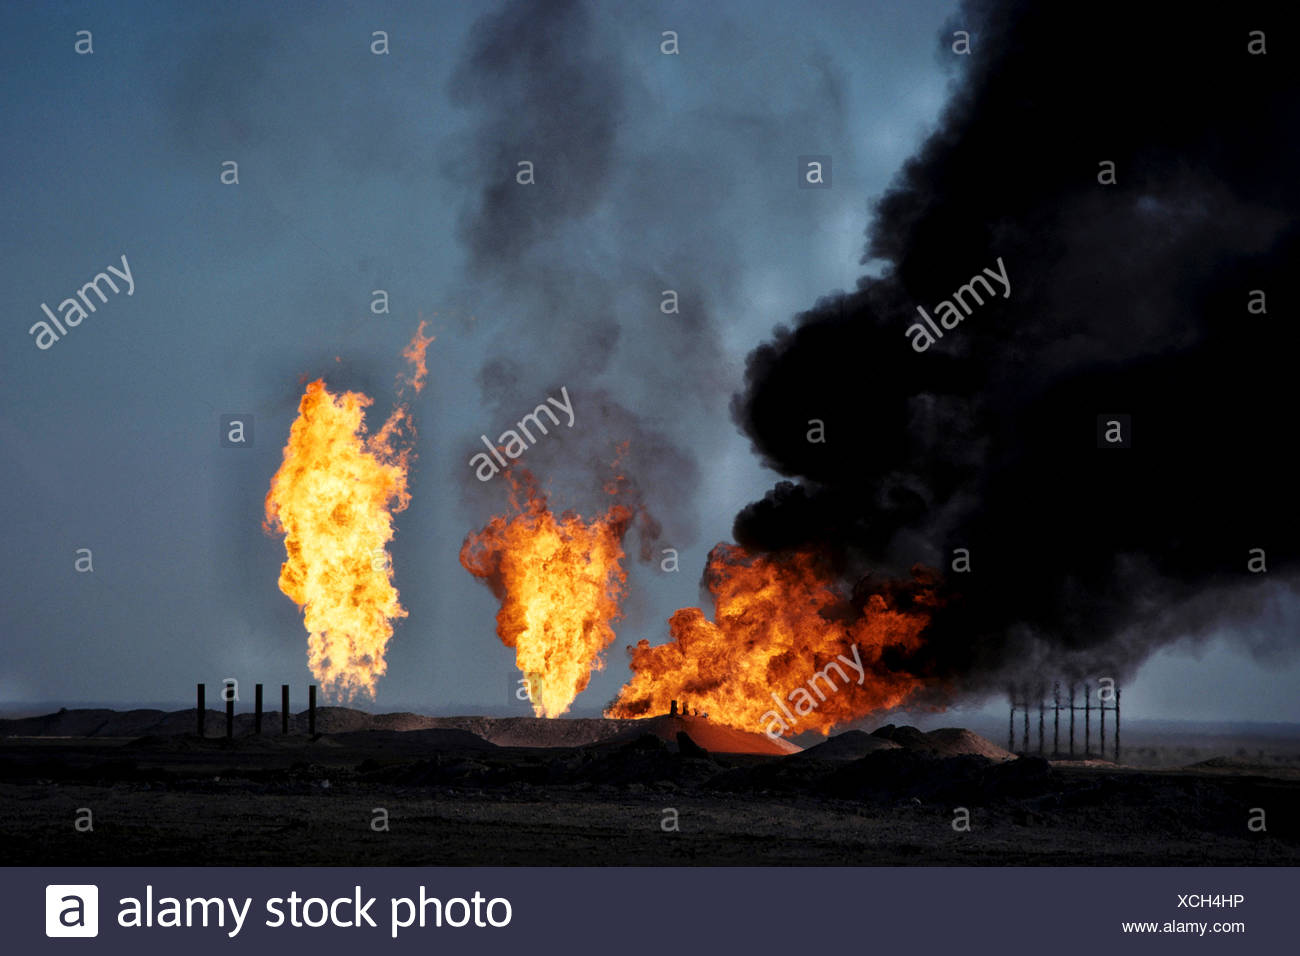 burning natural gas, Iraq, Rumaila - Stock Image